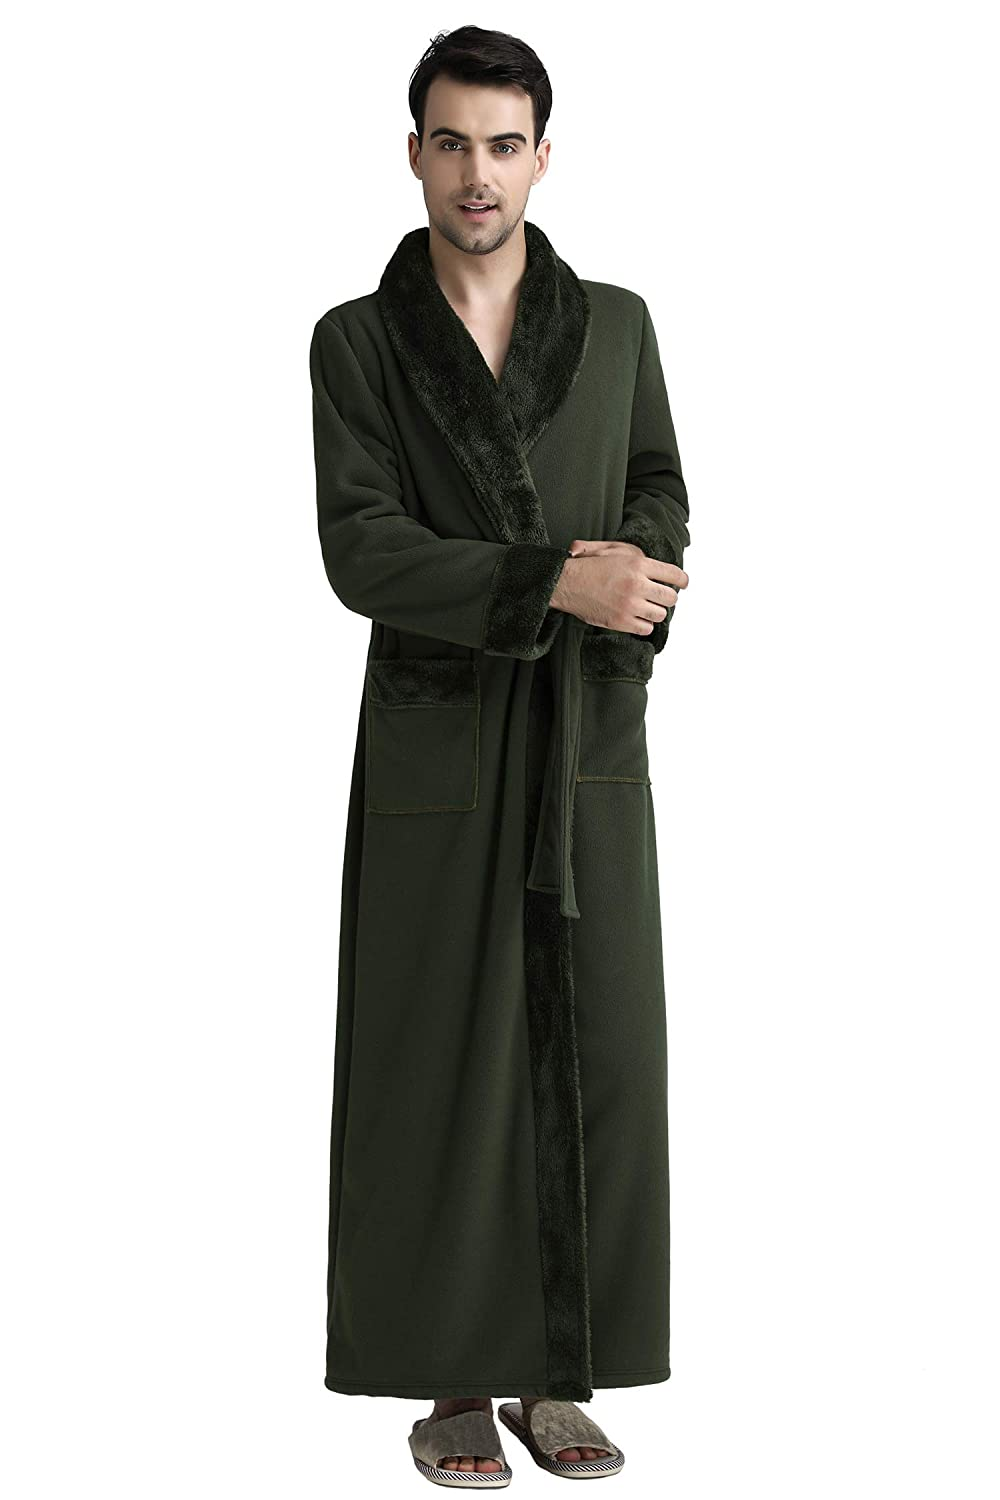 Cahayi Thick Unisex Bathrobe for Women Men Winter Ultra Warm Long Robe Plus Size CABR1709